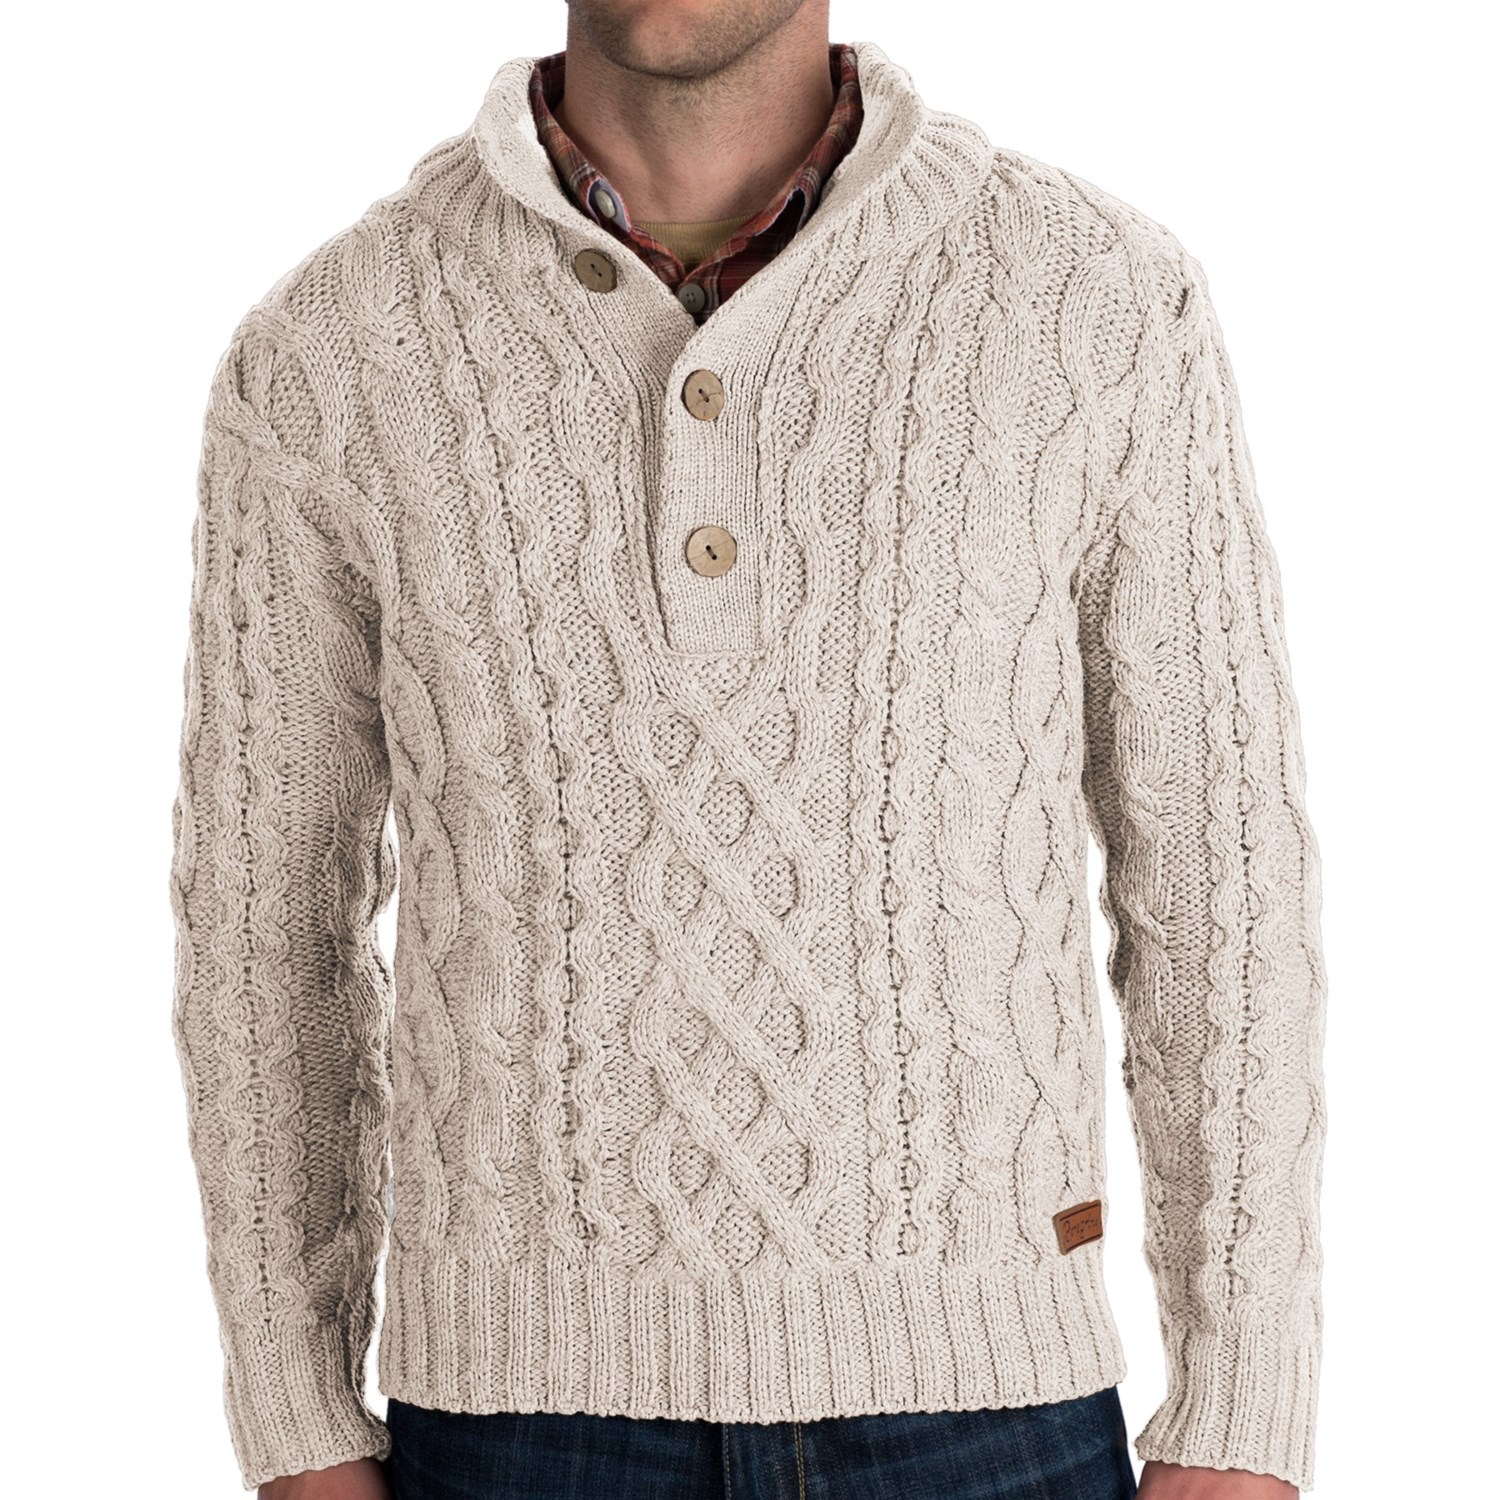 Shop eBay for great deals on Merino Wool Sweaters for Men. You'll find new or used products in Merino Wool Sweaters for Men on eBay. Free shipping on selected items.